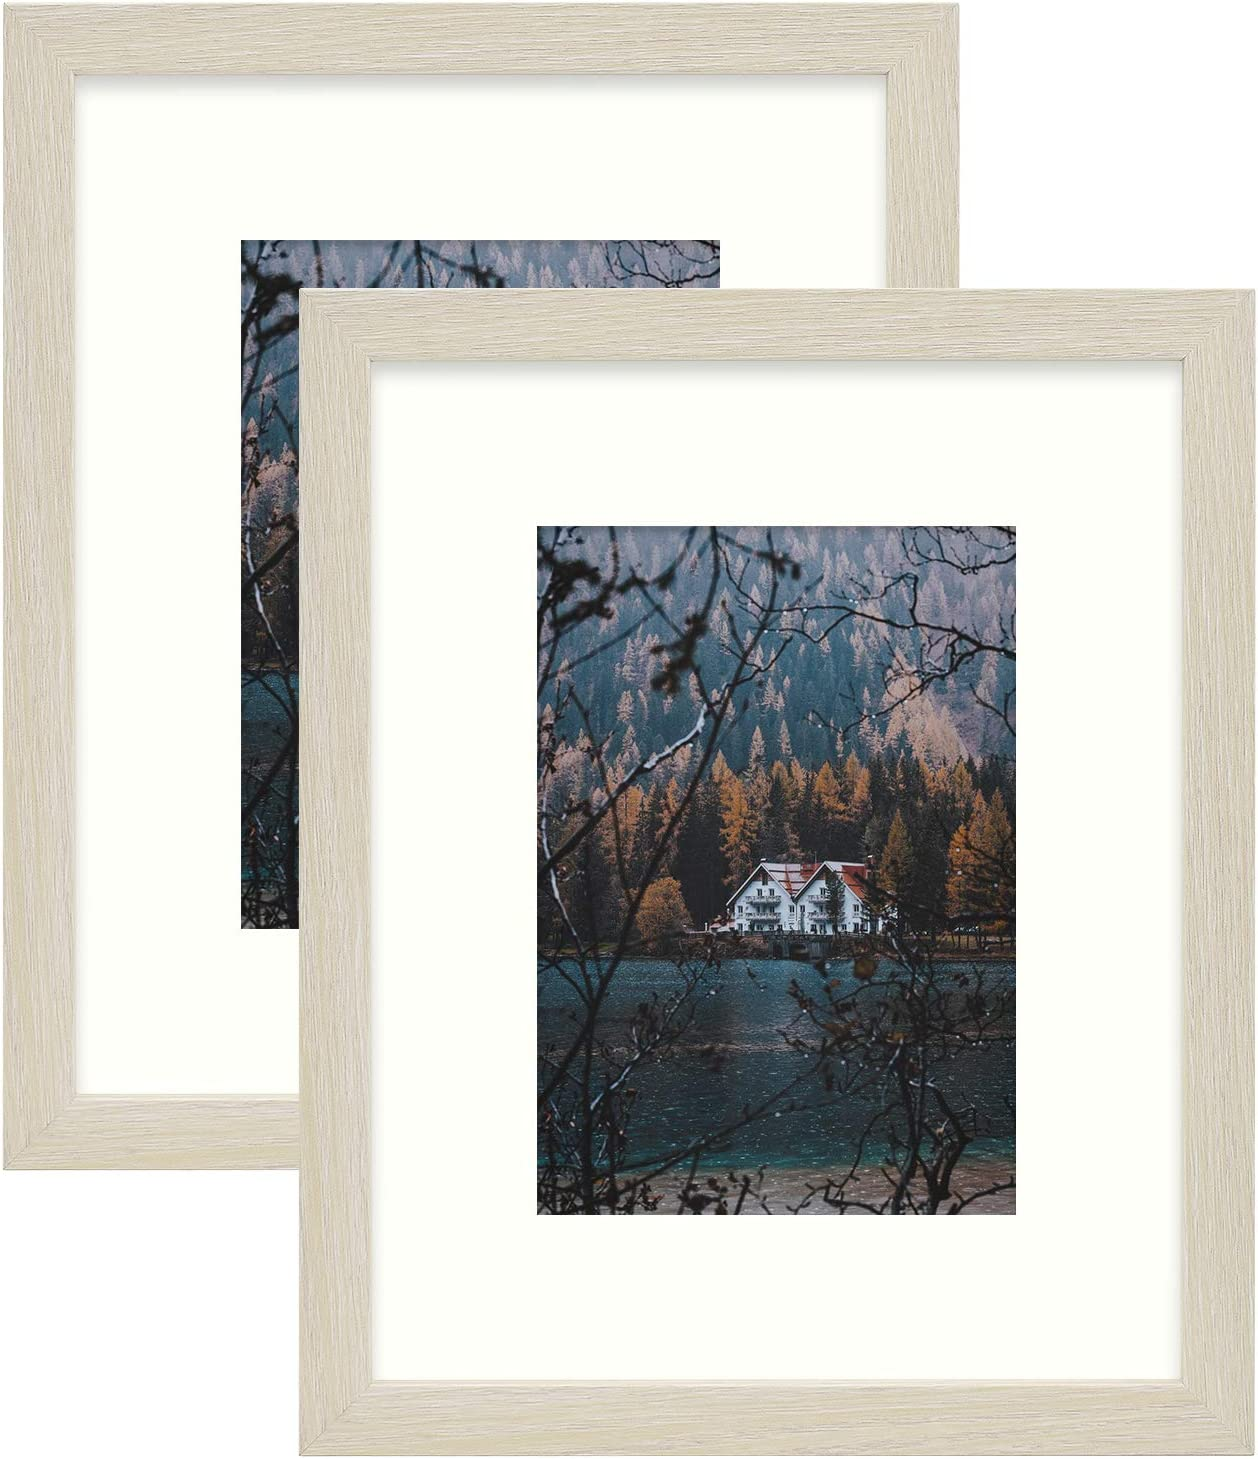 Frametory, Frame with Ivory Mat for Photo, Smooth Wood Grain Finish Easel Stand, Sawtooth Hangers, Real Glass - Landscape/Portrait, Wall/Table Display (Rustic Beige, 8x10 Frame for 5x7 Photo, 2-Pack)